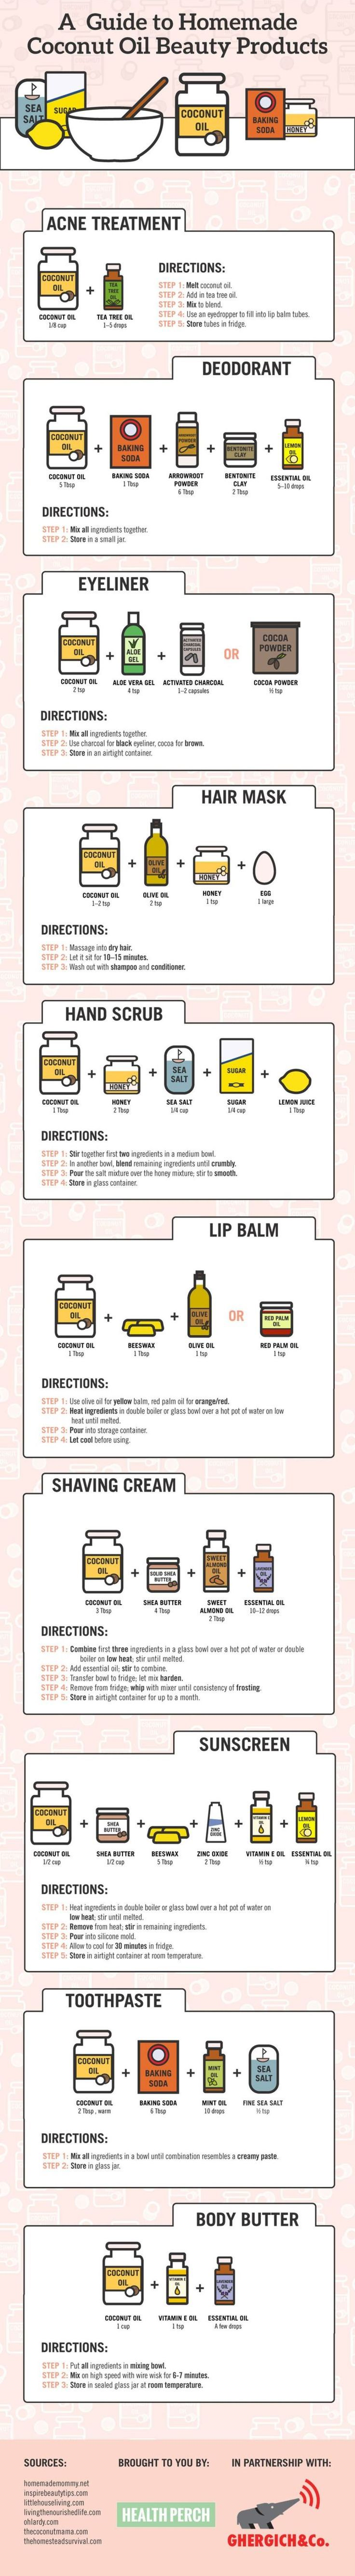 A Guide to Homemade Coconut Oil Beauty Products! - particularly interested in trying the eyeliner